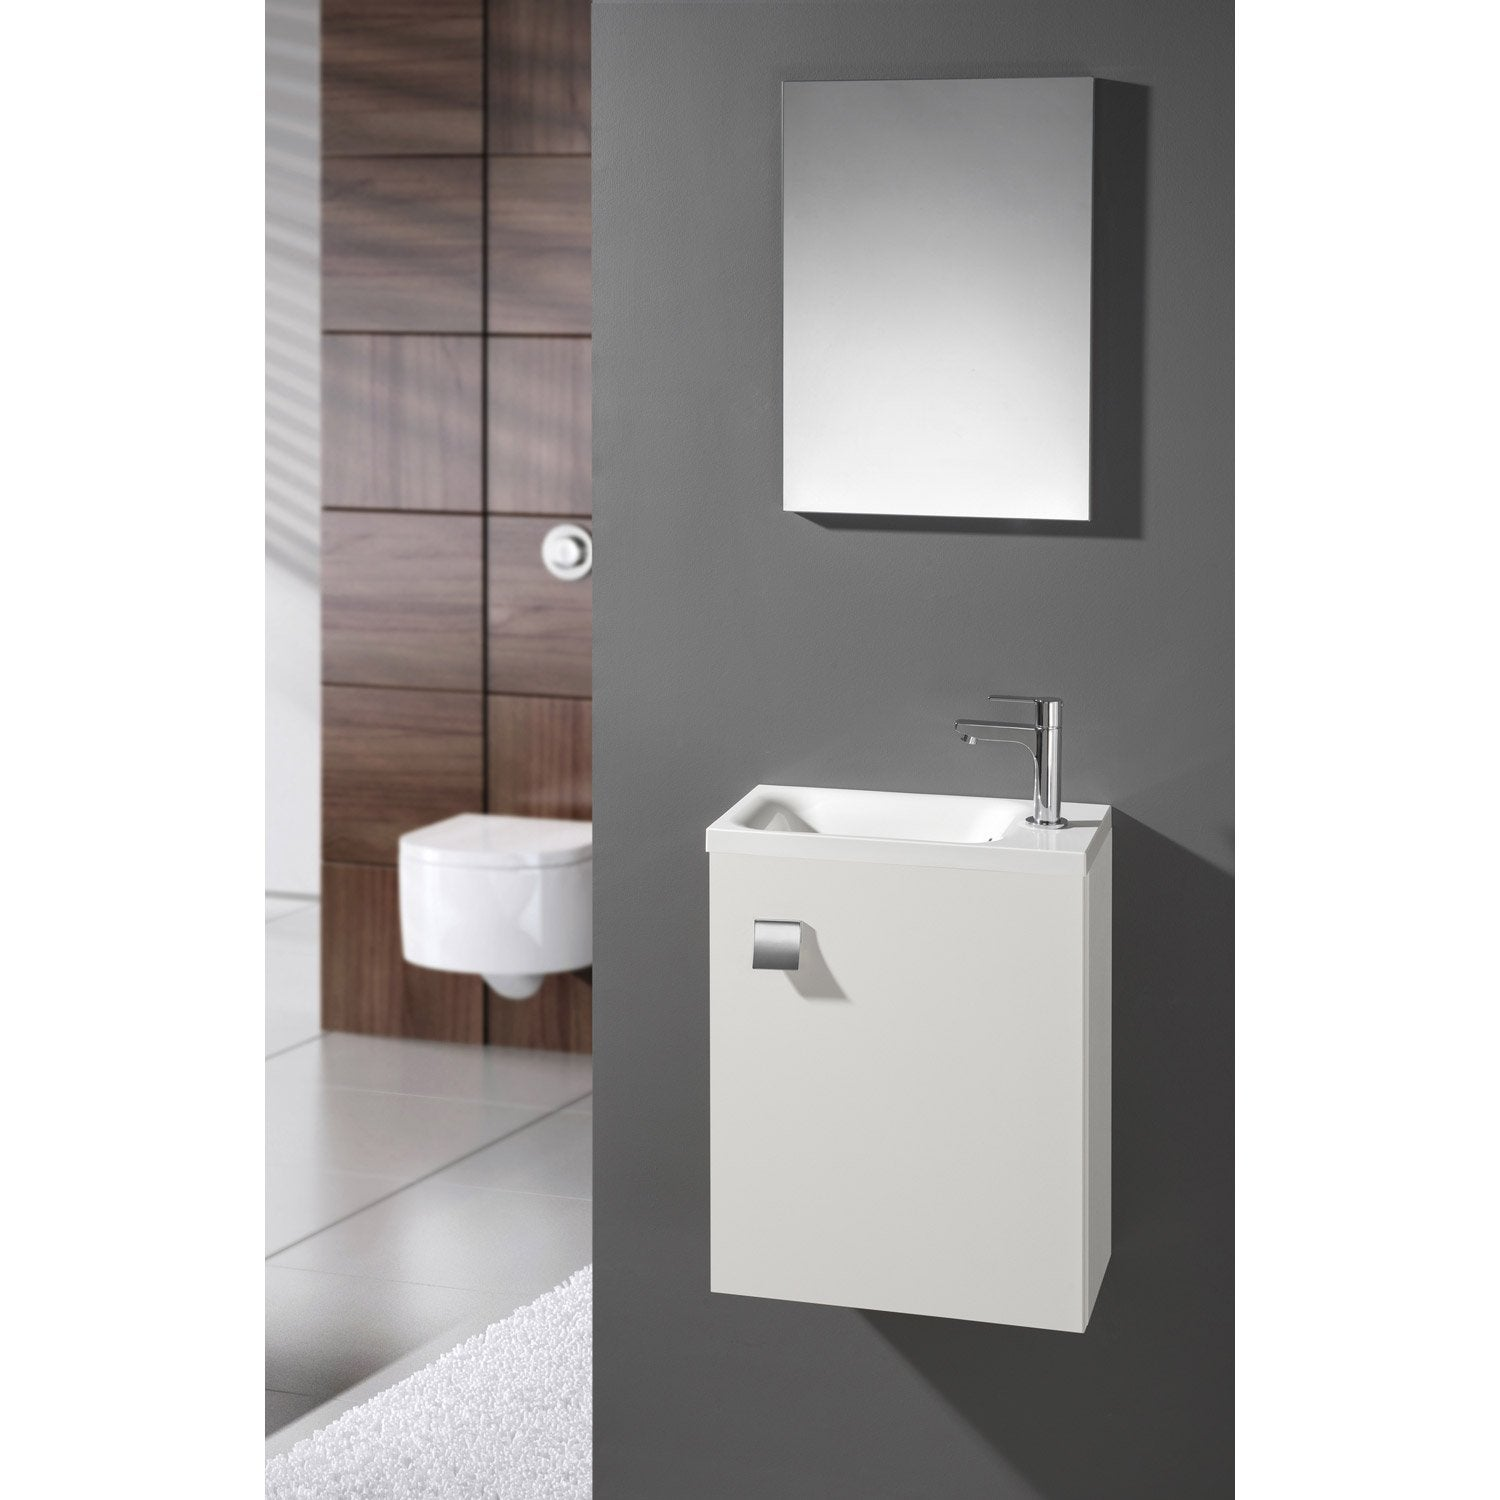 meuble lave mains avec miroir blanc blanc n 0 coin d 39 o leroy merlin. Black Bedroom Furniture Sets. Home Design Ideas